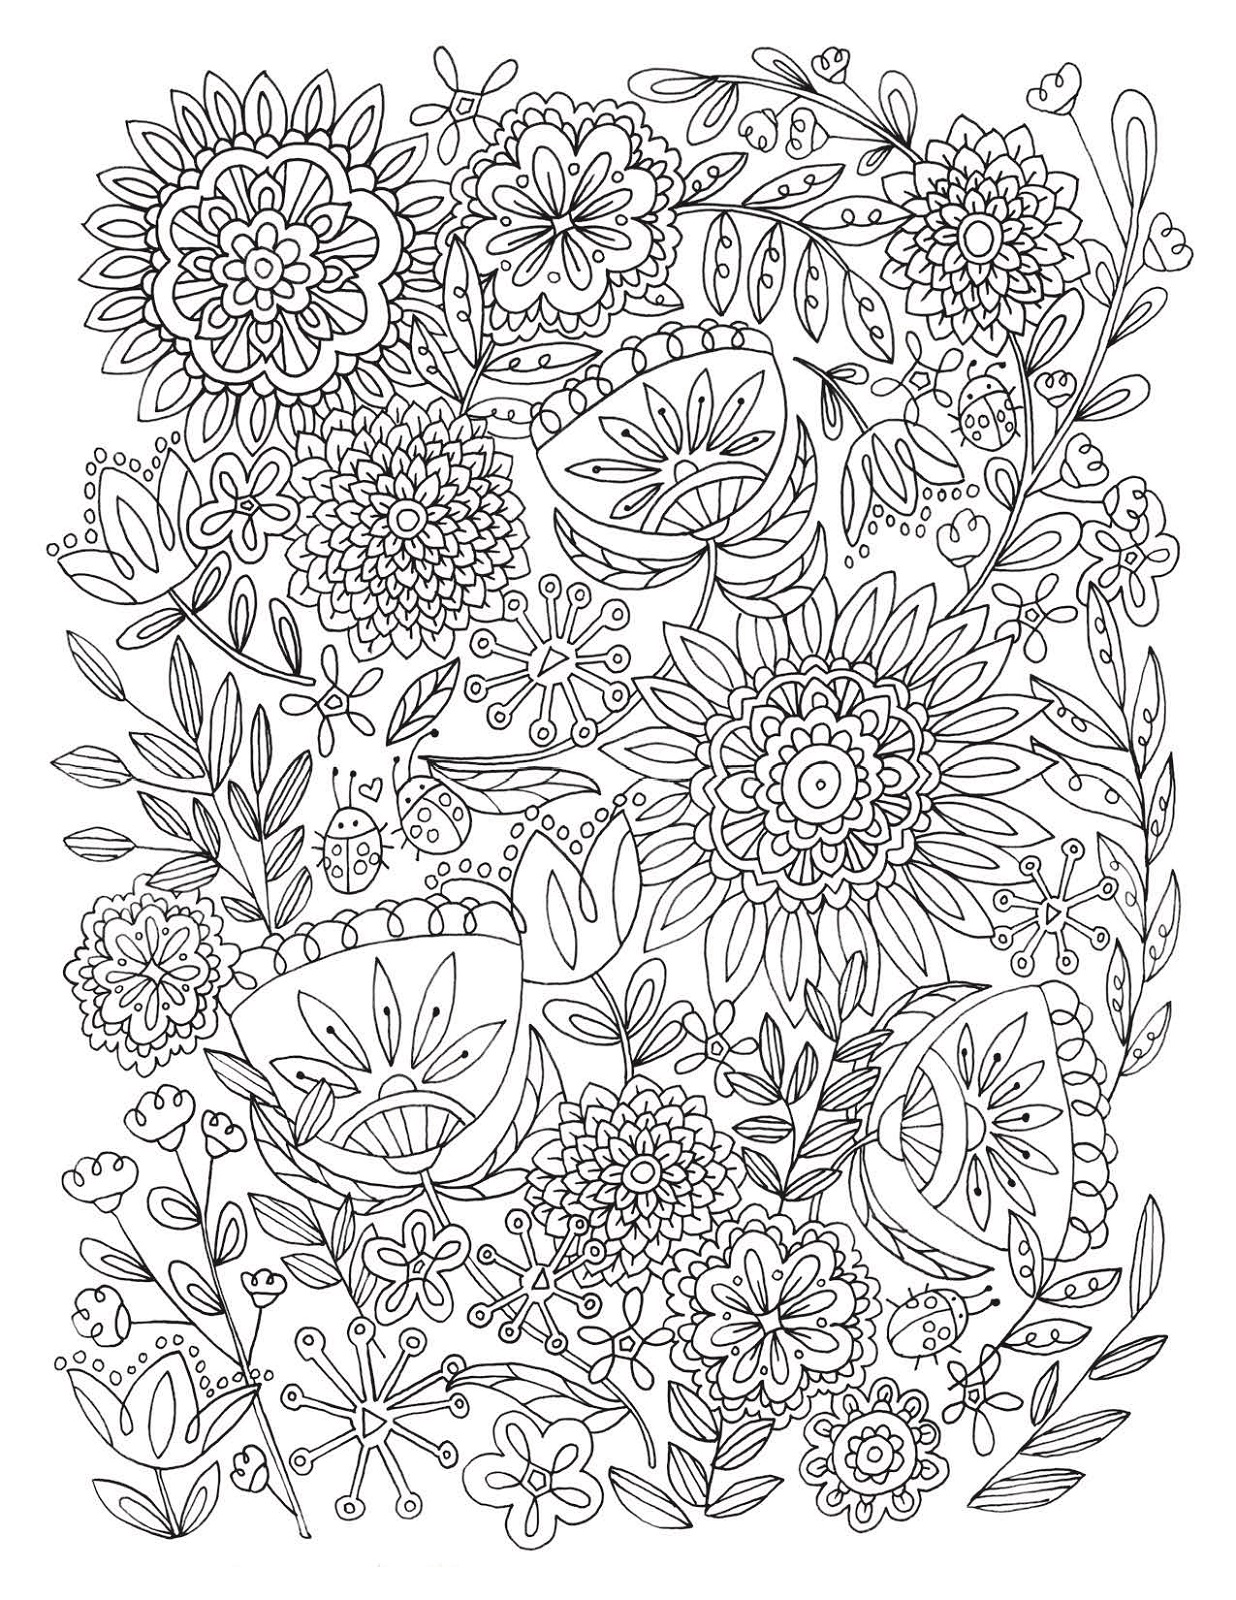 Coloring Activities for Adults